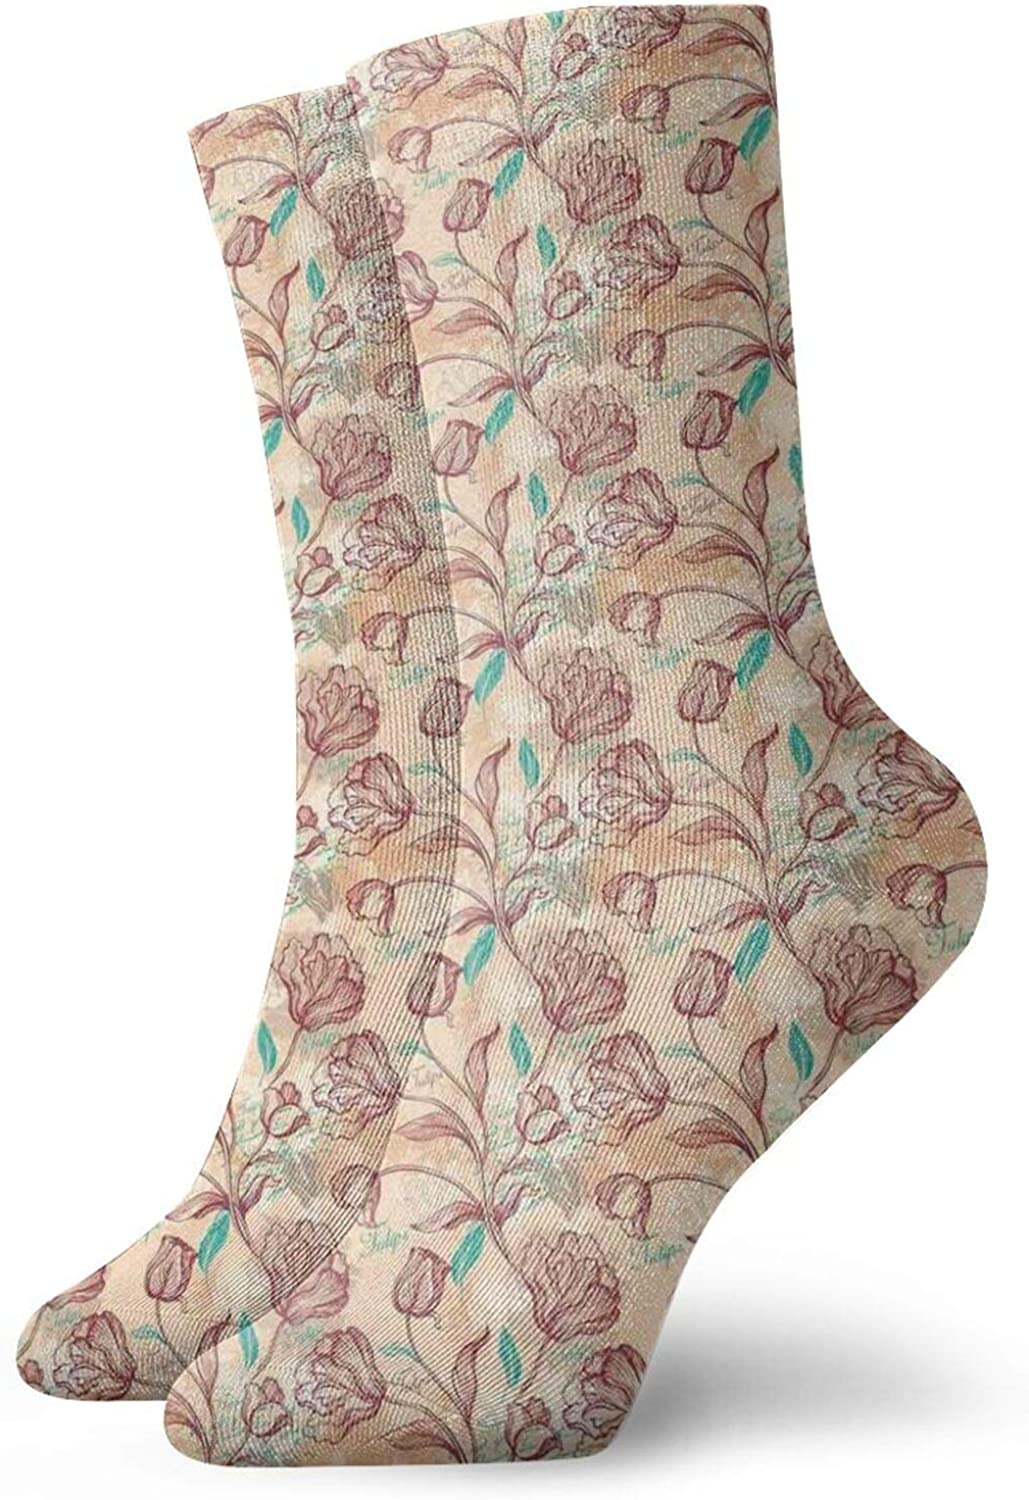 Silhouettes Of Blossoming Fresh Petals Of Spring Season On Dark Toned Background Athletic Socks For Men / Women,30CM